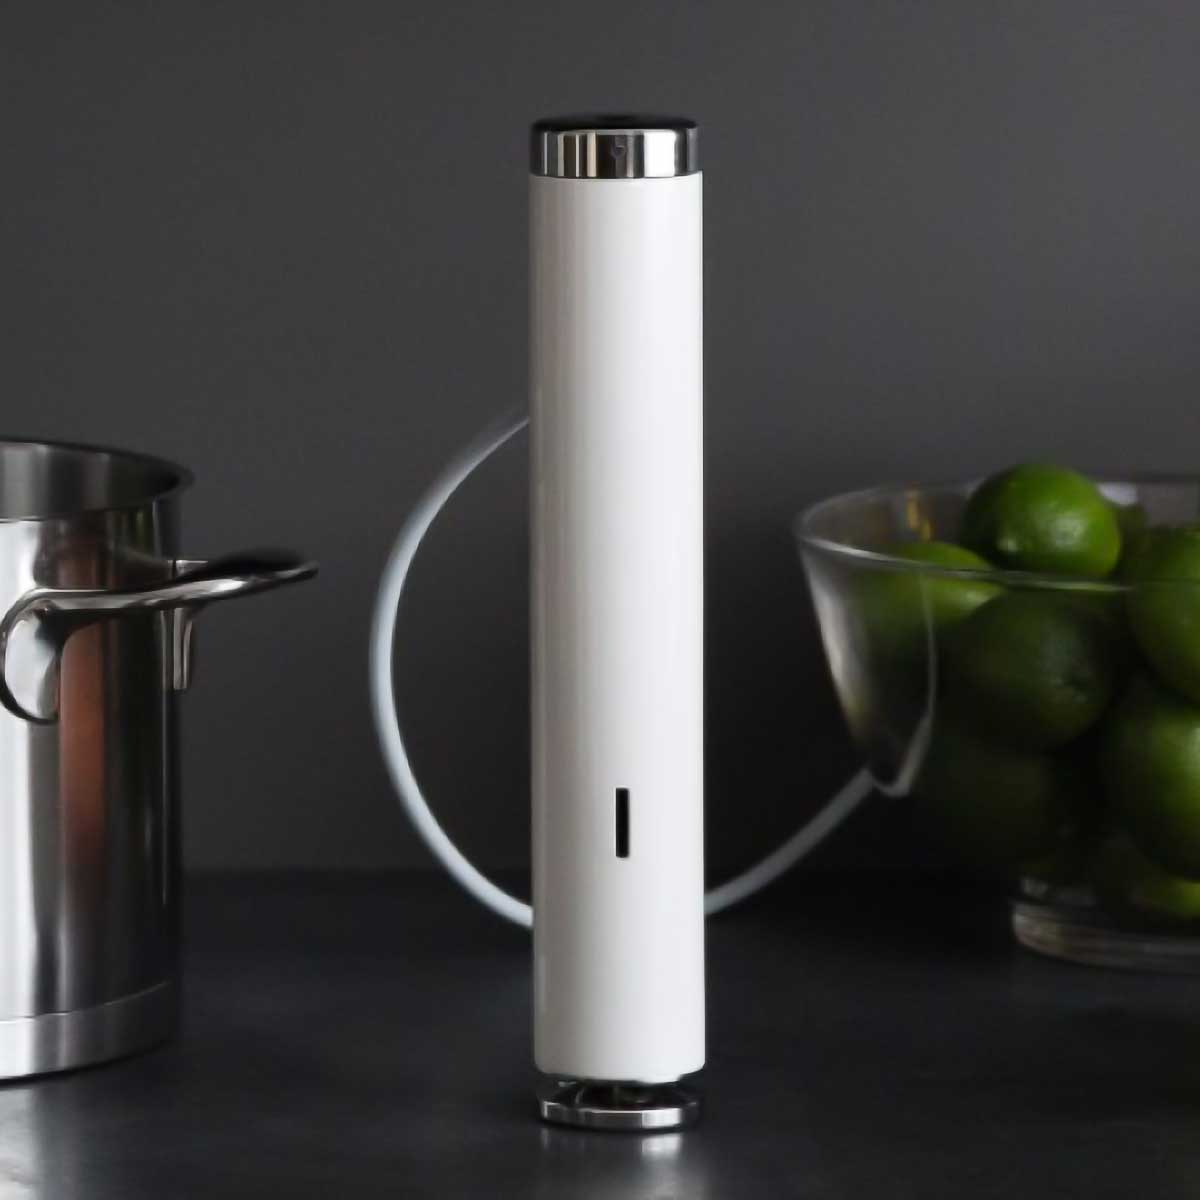 Joule Sous Vide with Dark Background